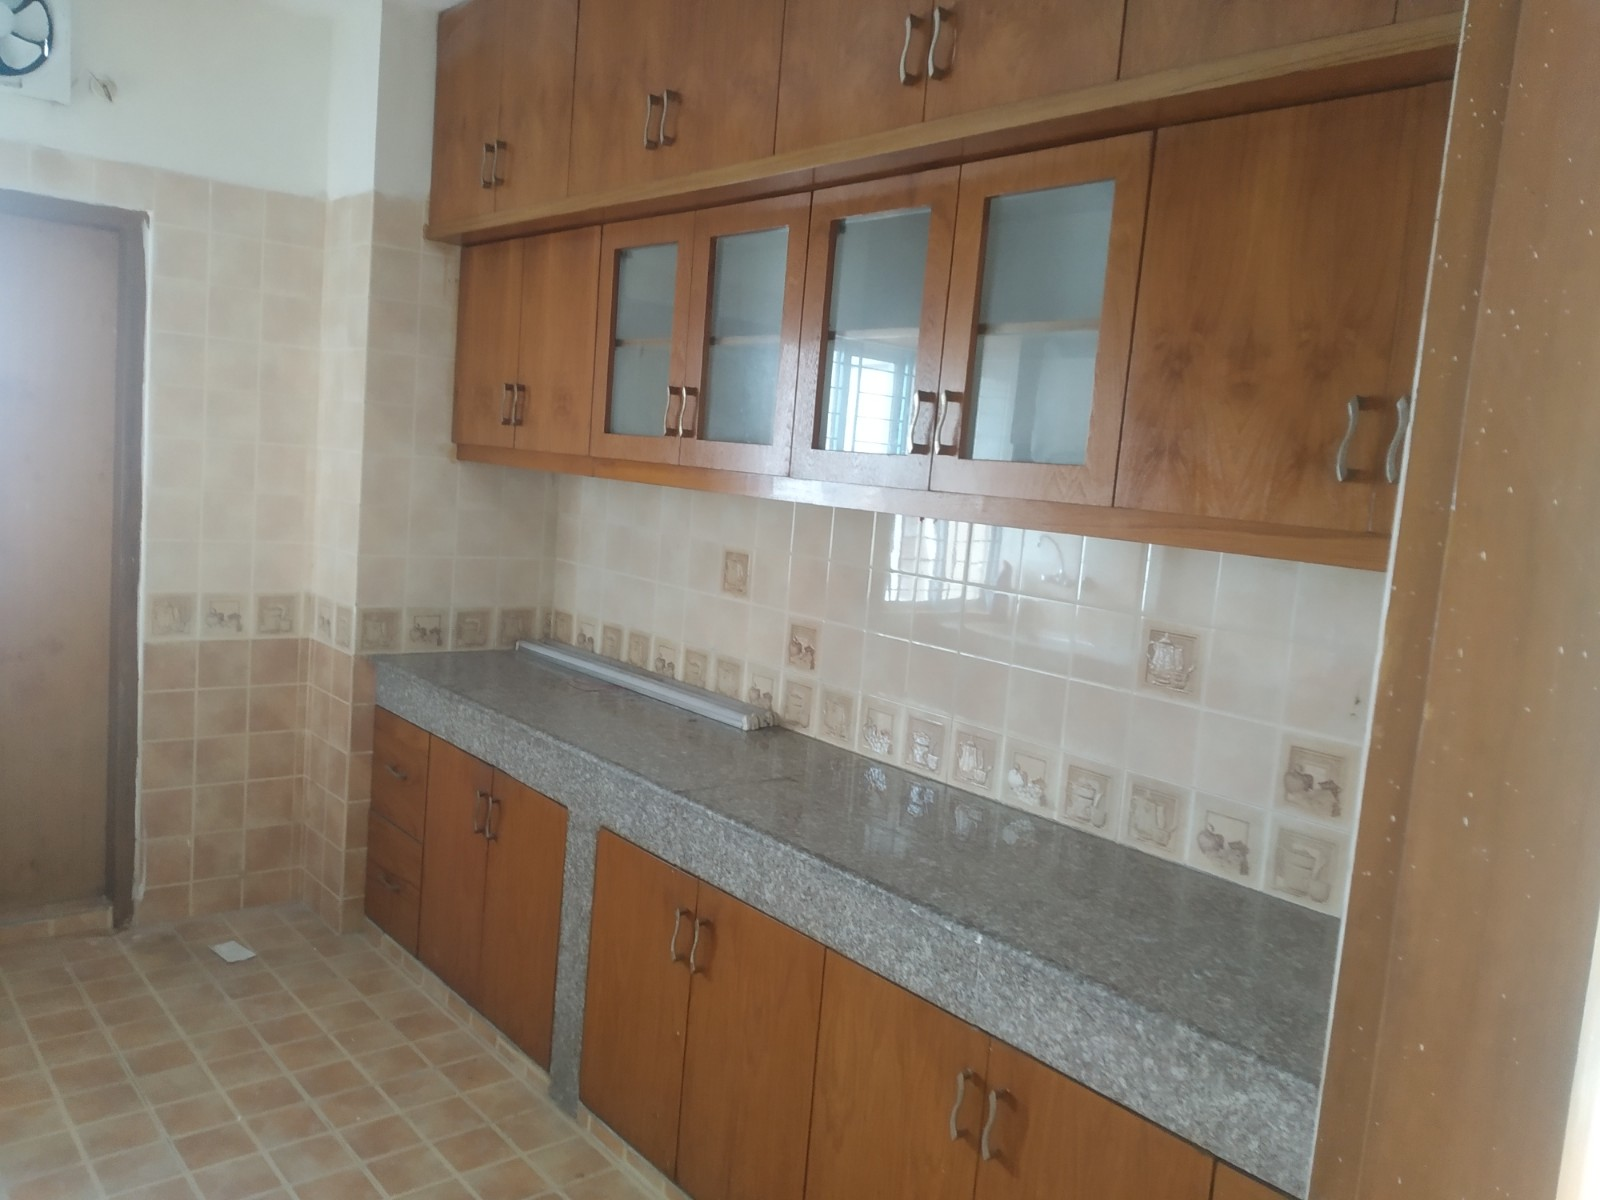 2810-sft-apartment-for-sale-at-dhanmondi-14th-floor-870479